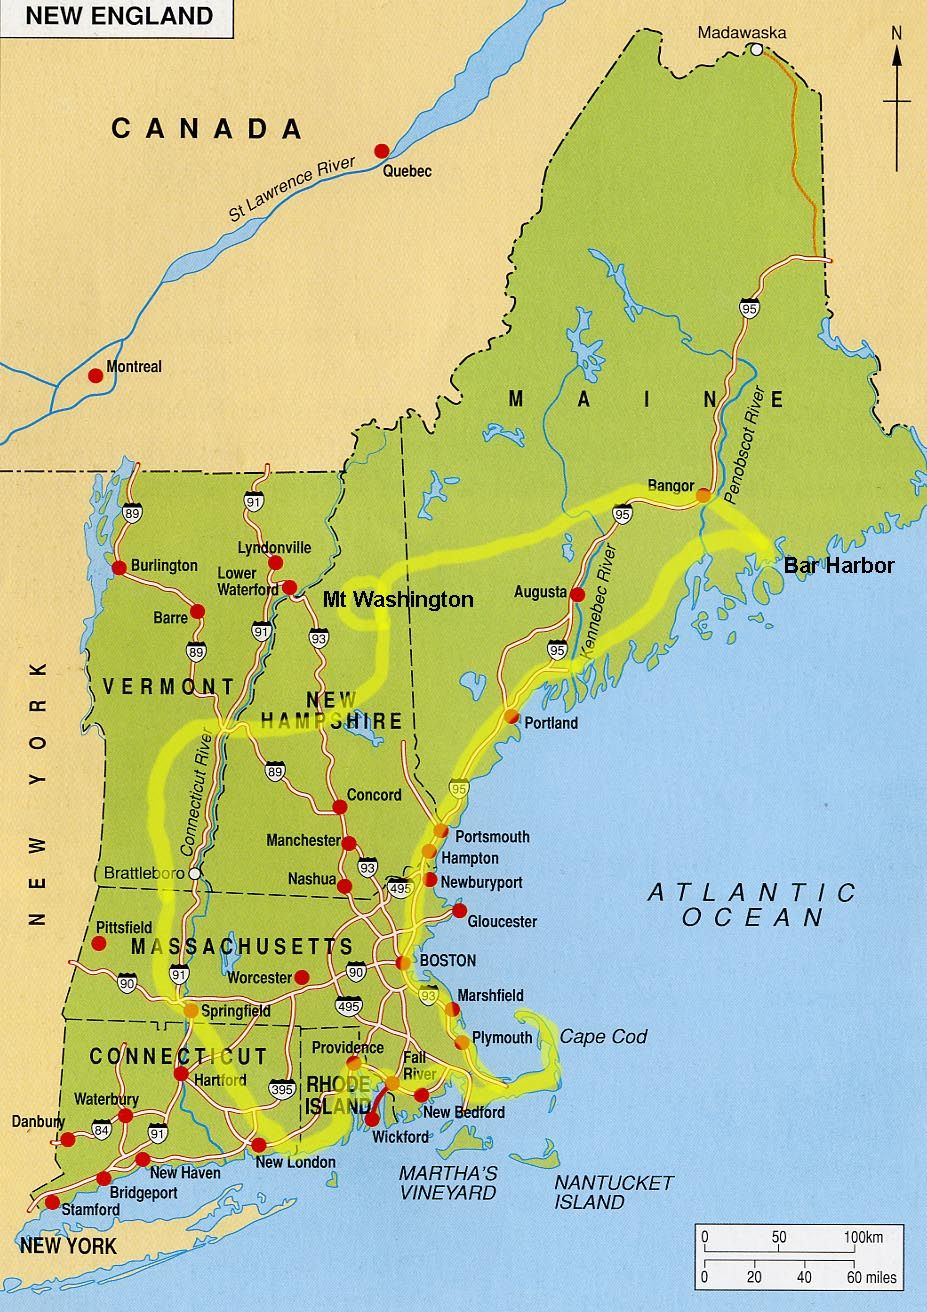 New England Coast Map new england pictures   Bing Images | New England | New england